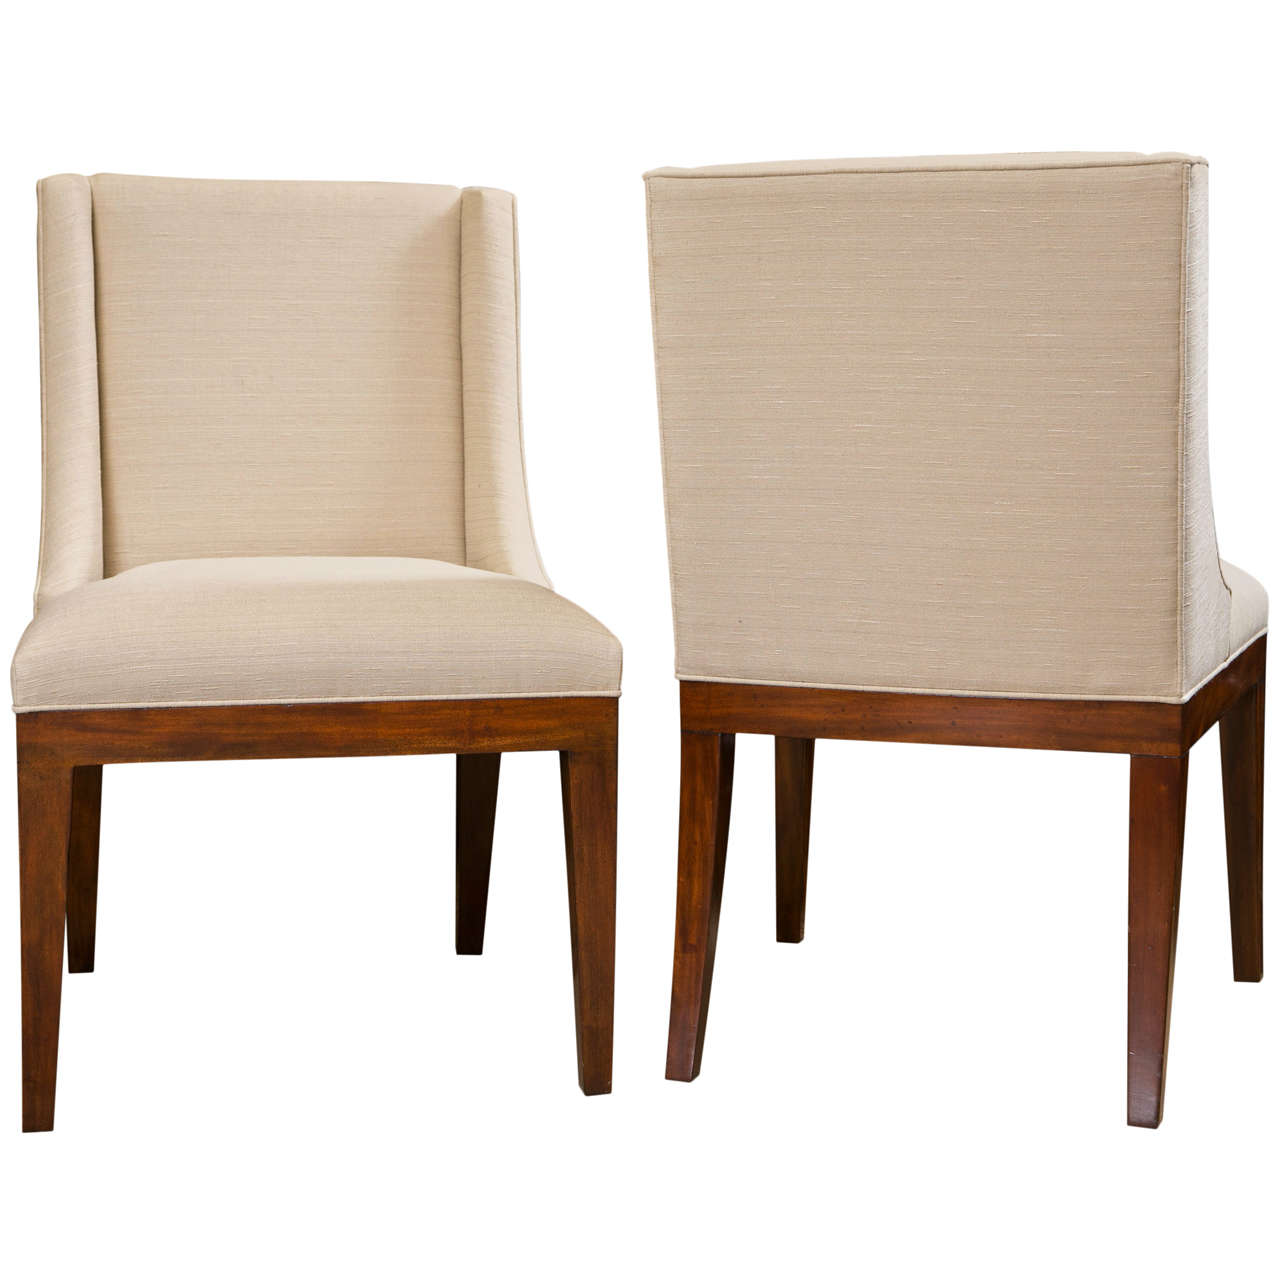 Set of 6 classic modern upholstered dining chairs at 1stdibs for Dining room sofa seating